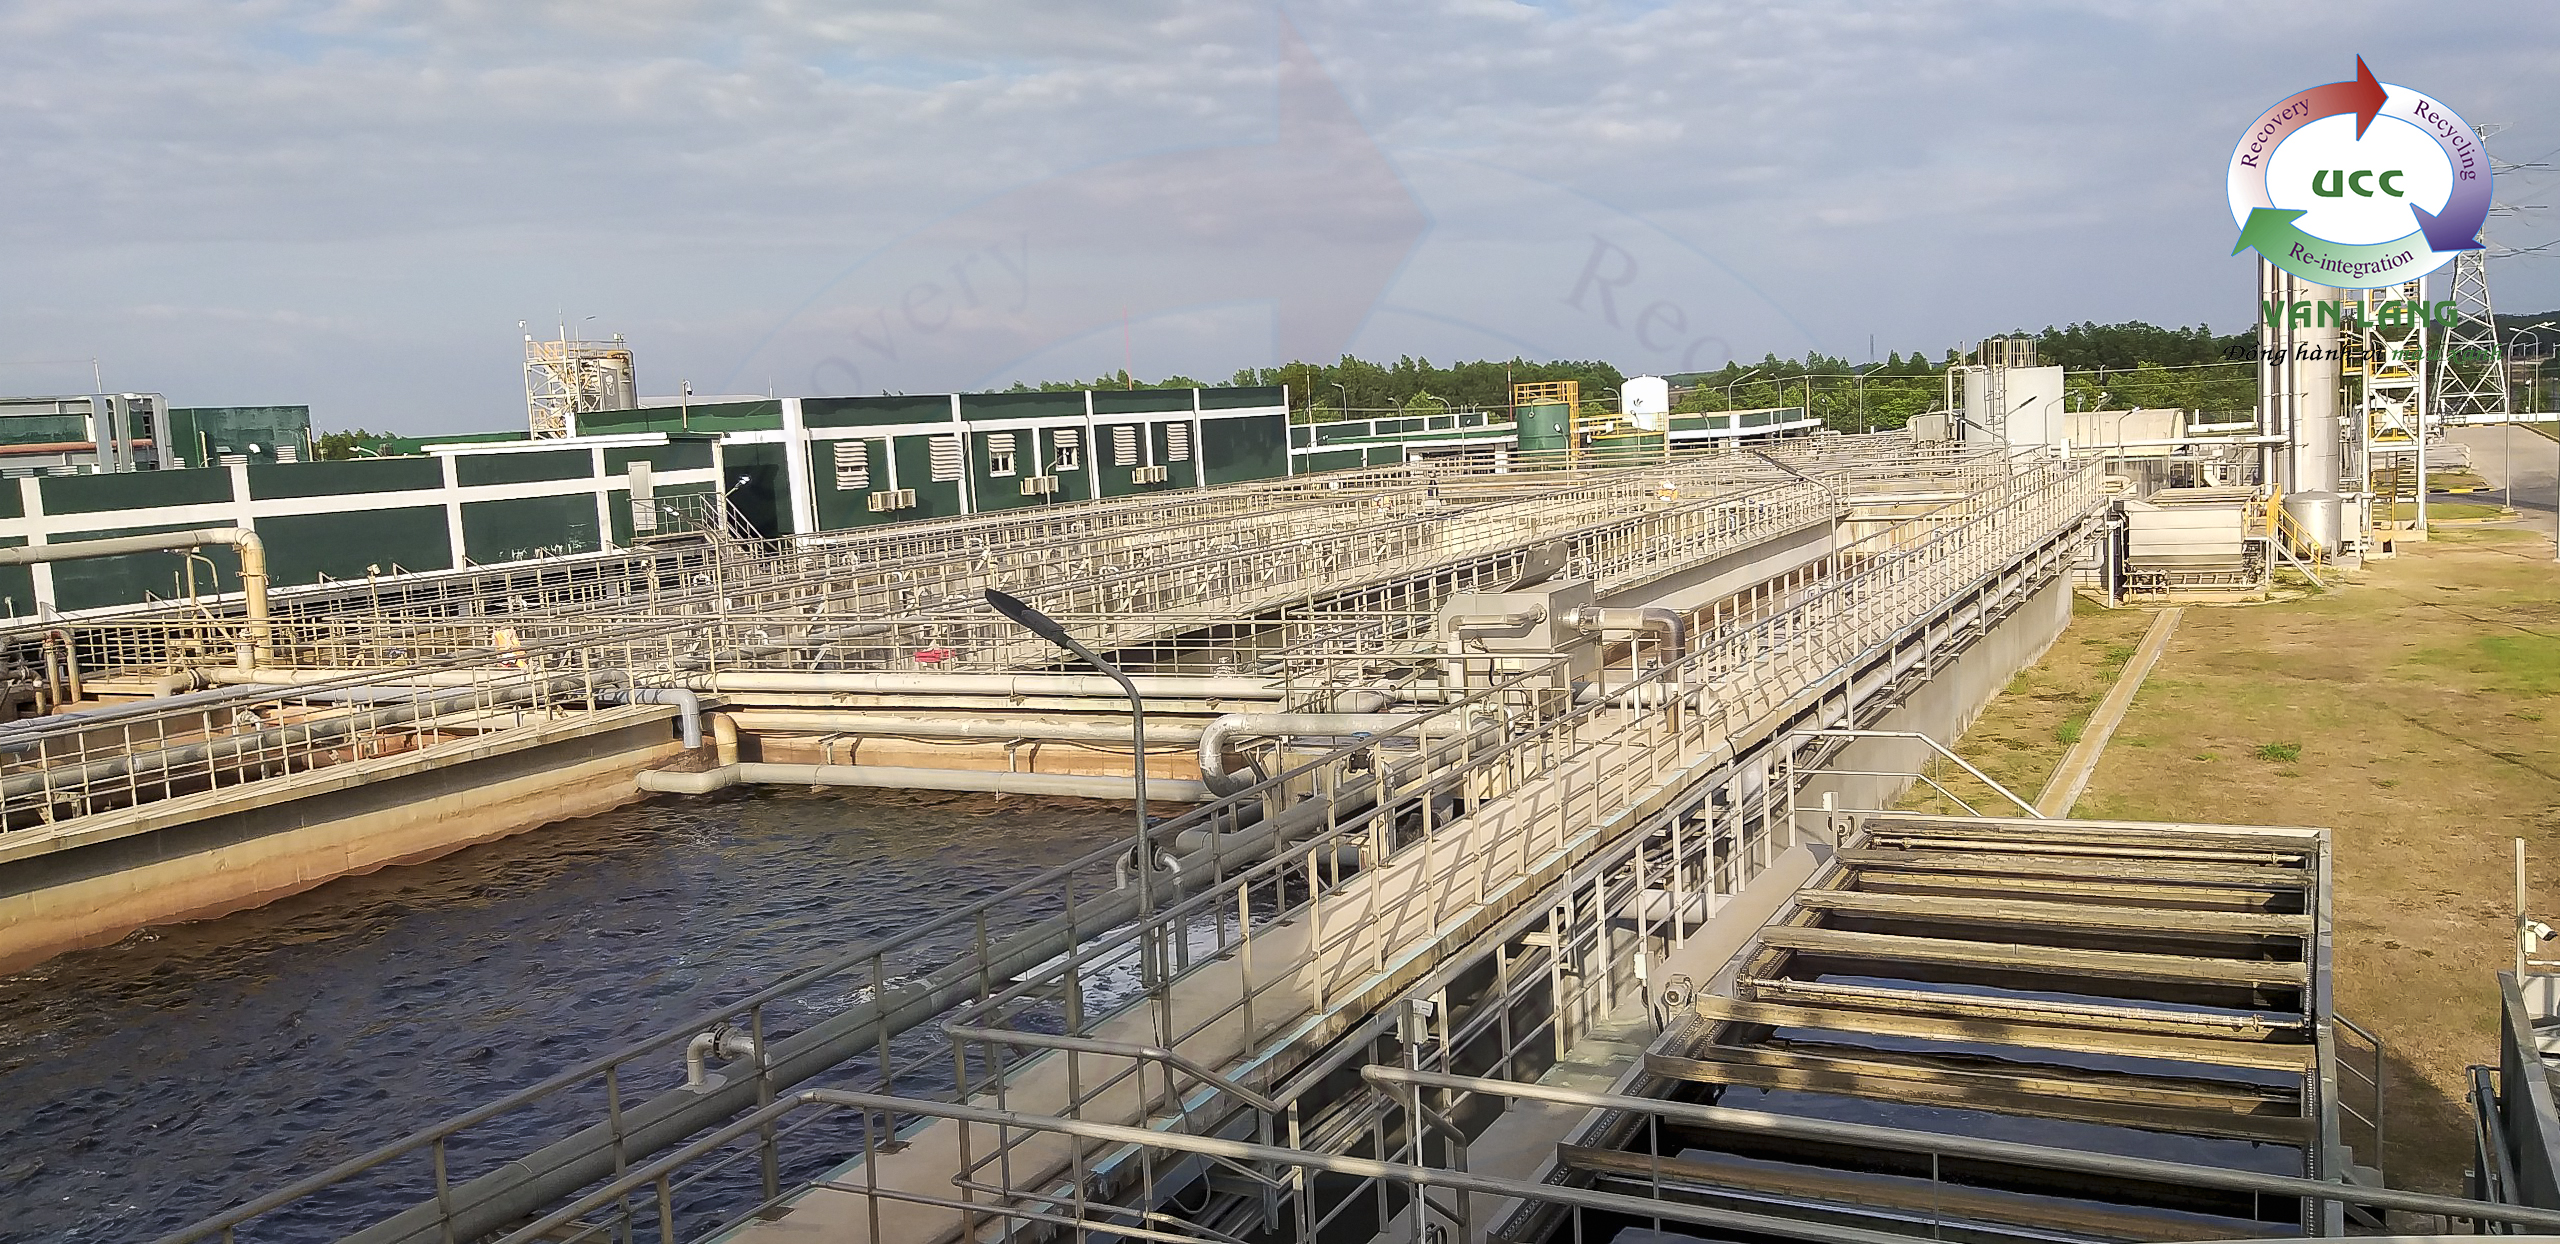 WASTEWATER TREATMENT PLANT OF FAR EASTERN CO., LTD